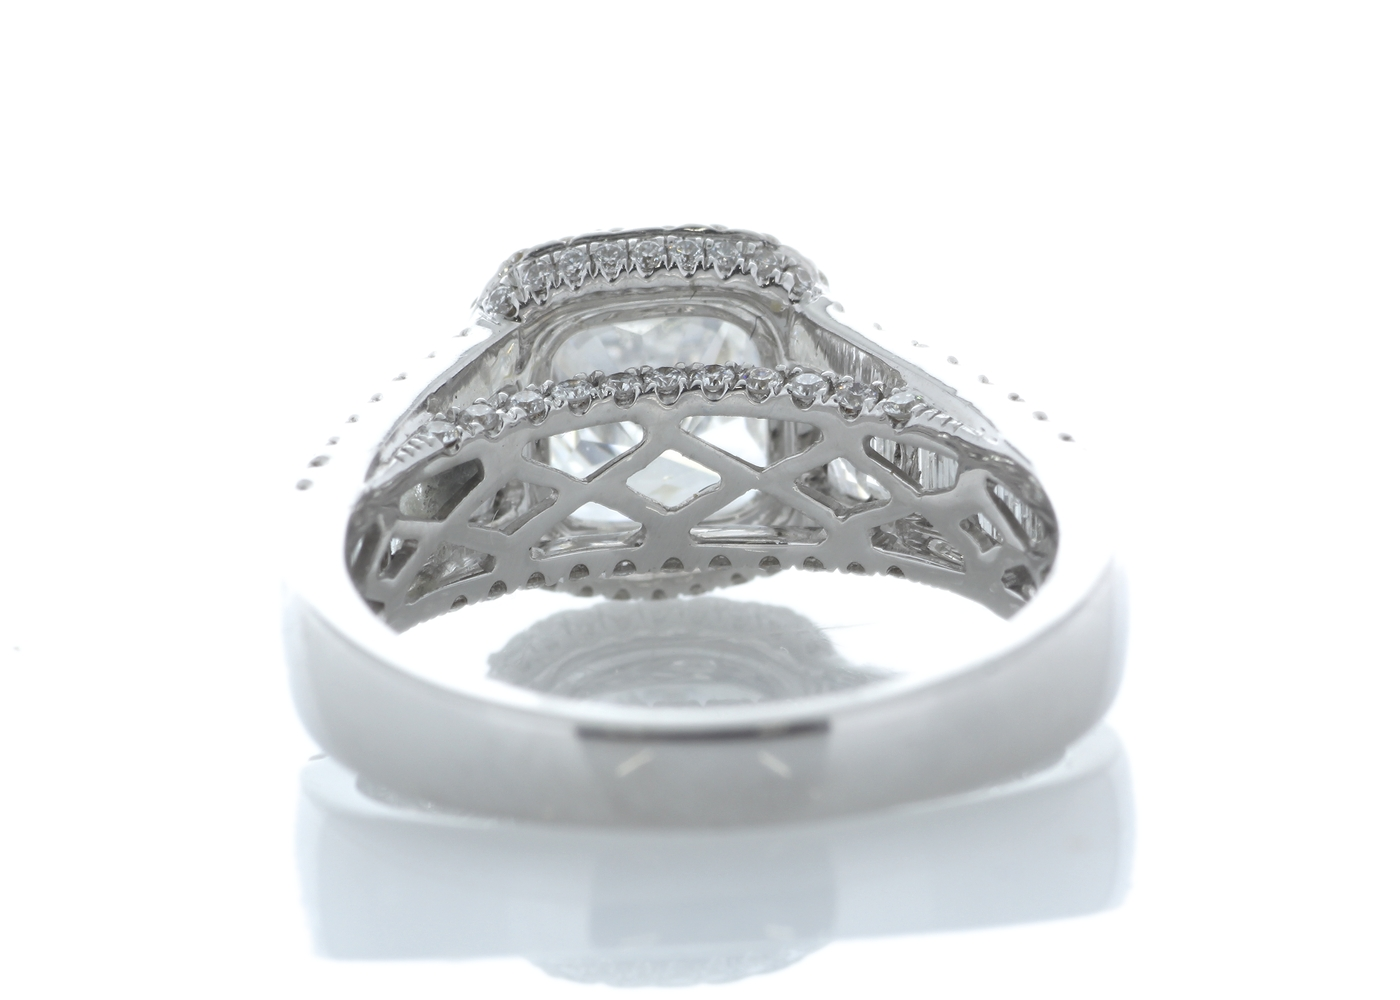 18ct White Gold Halo Set Ring 3.14 Carats - Image 3 of 5